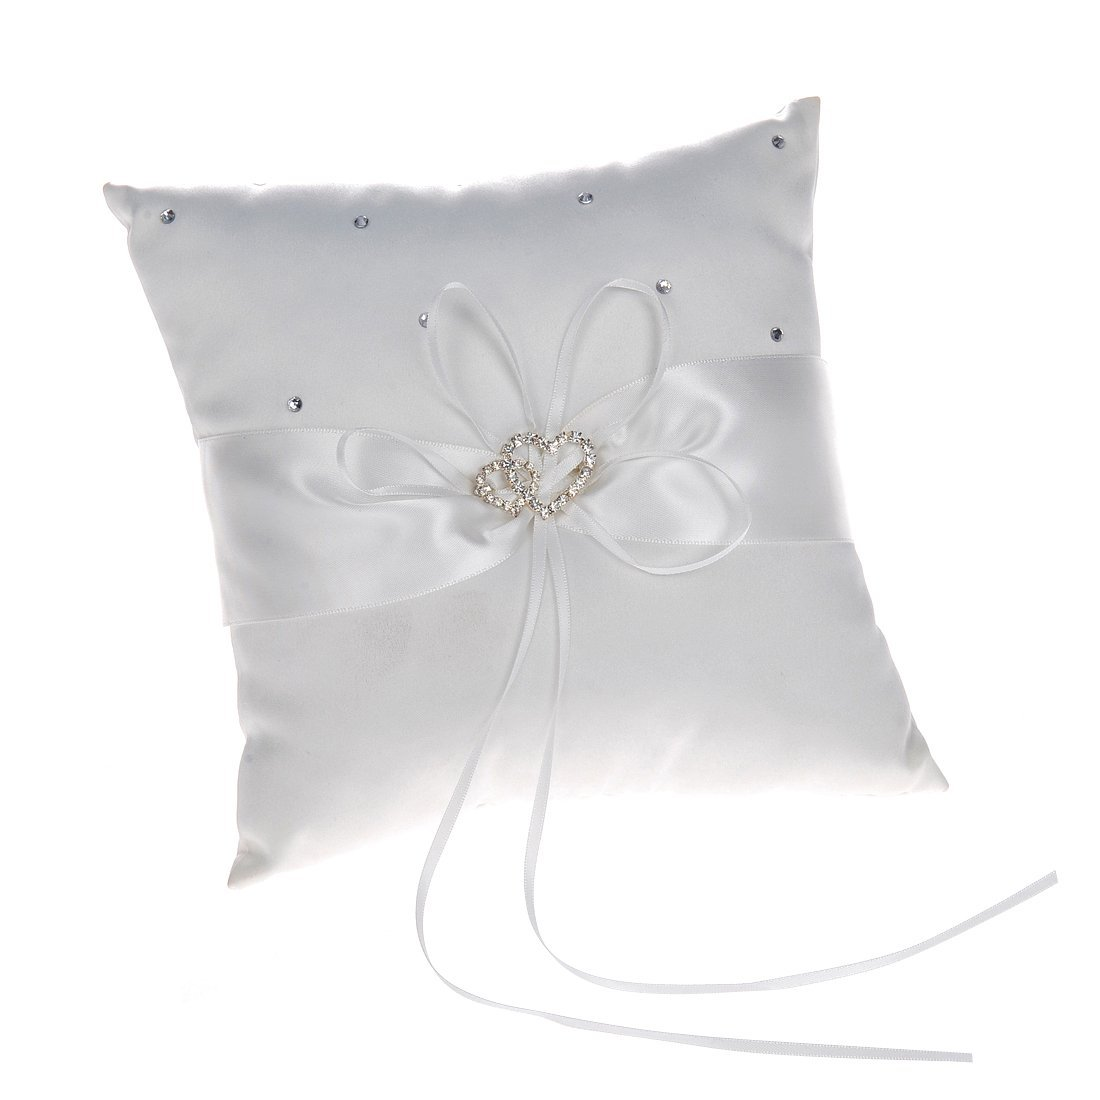 Best Rated In Ring Bearer Pillows & Helpful Customer